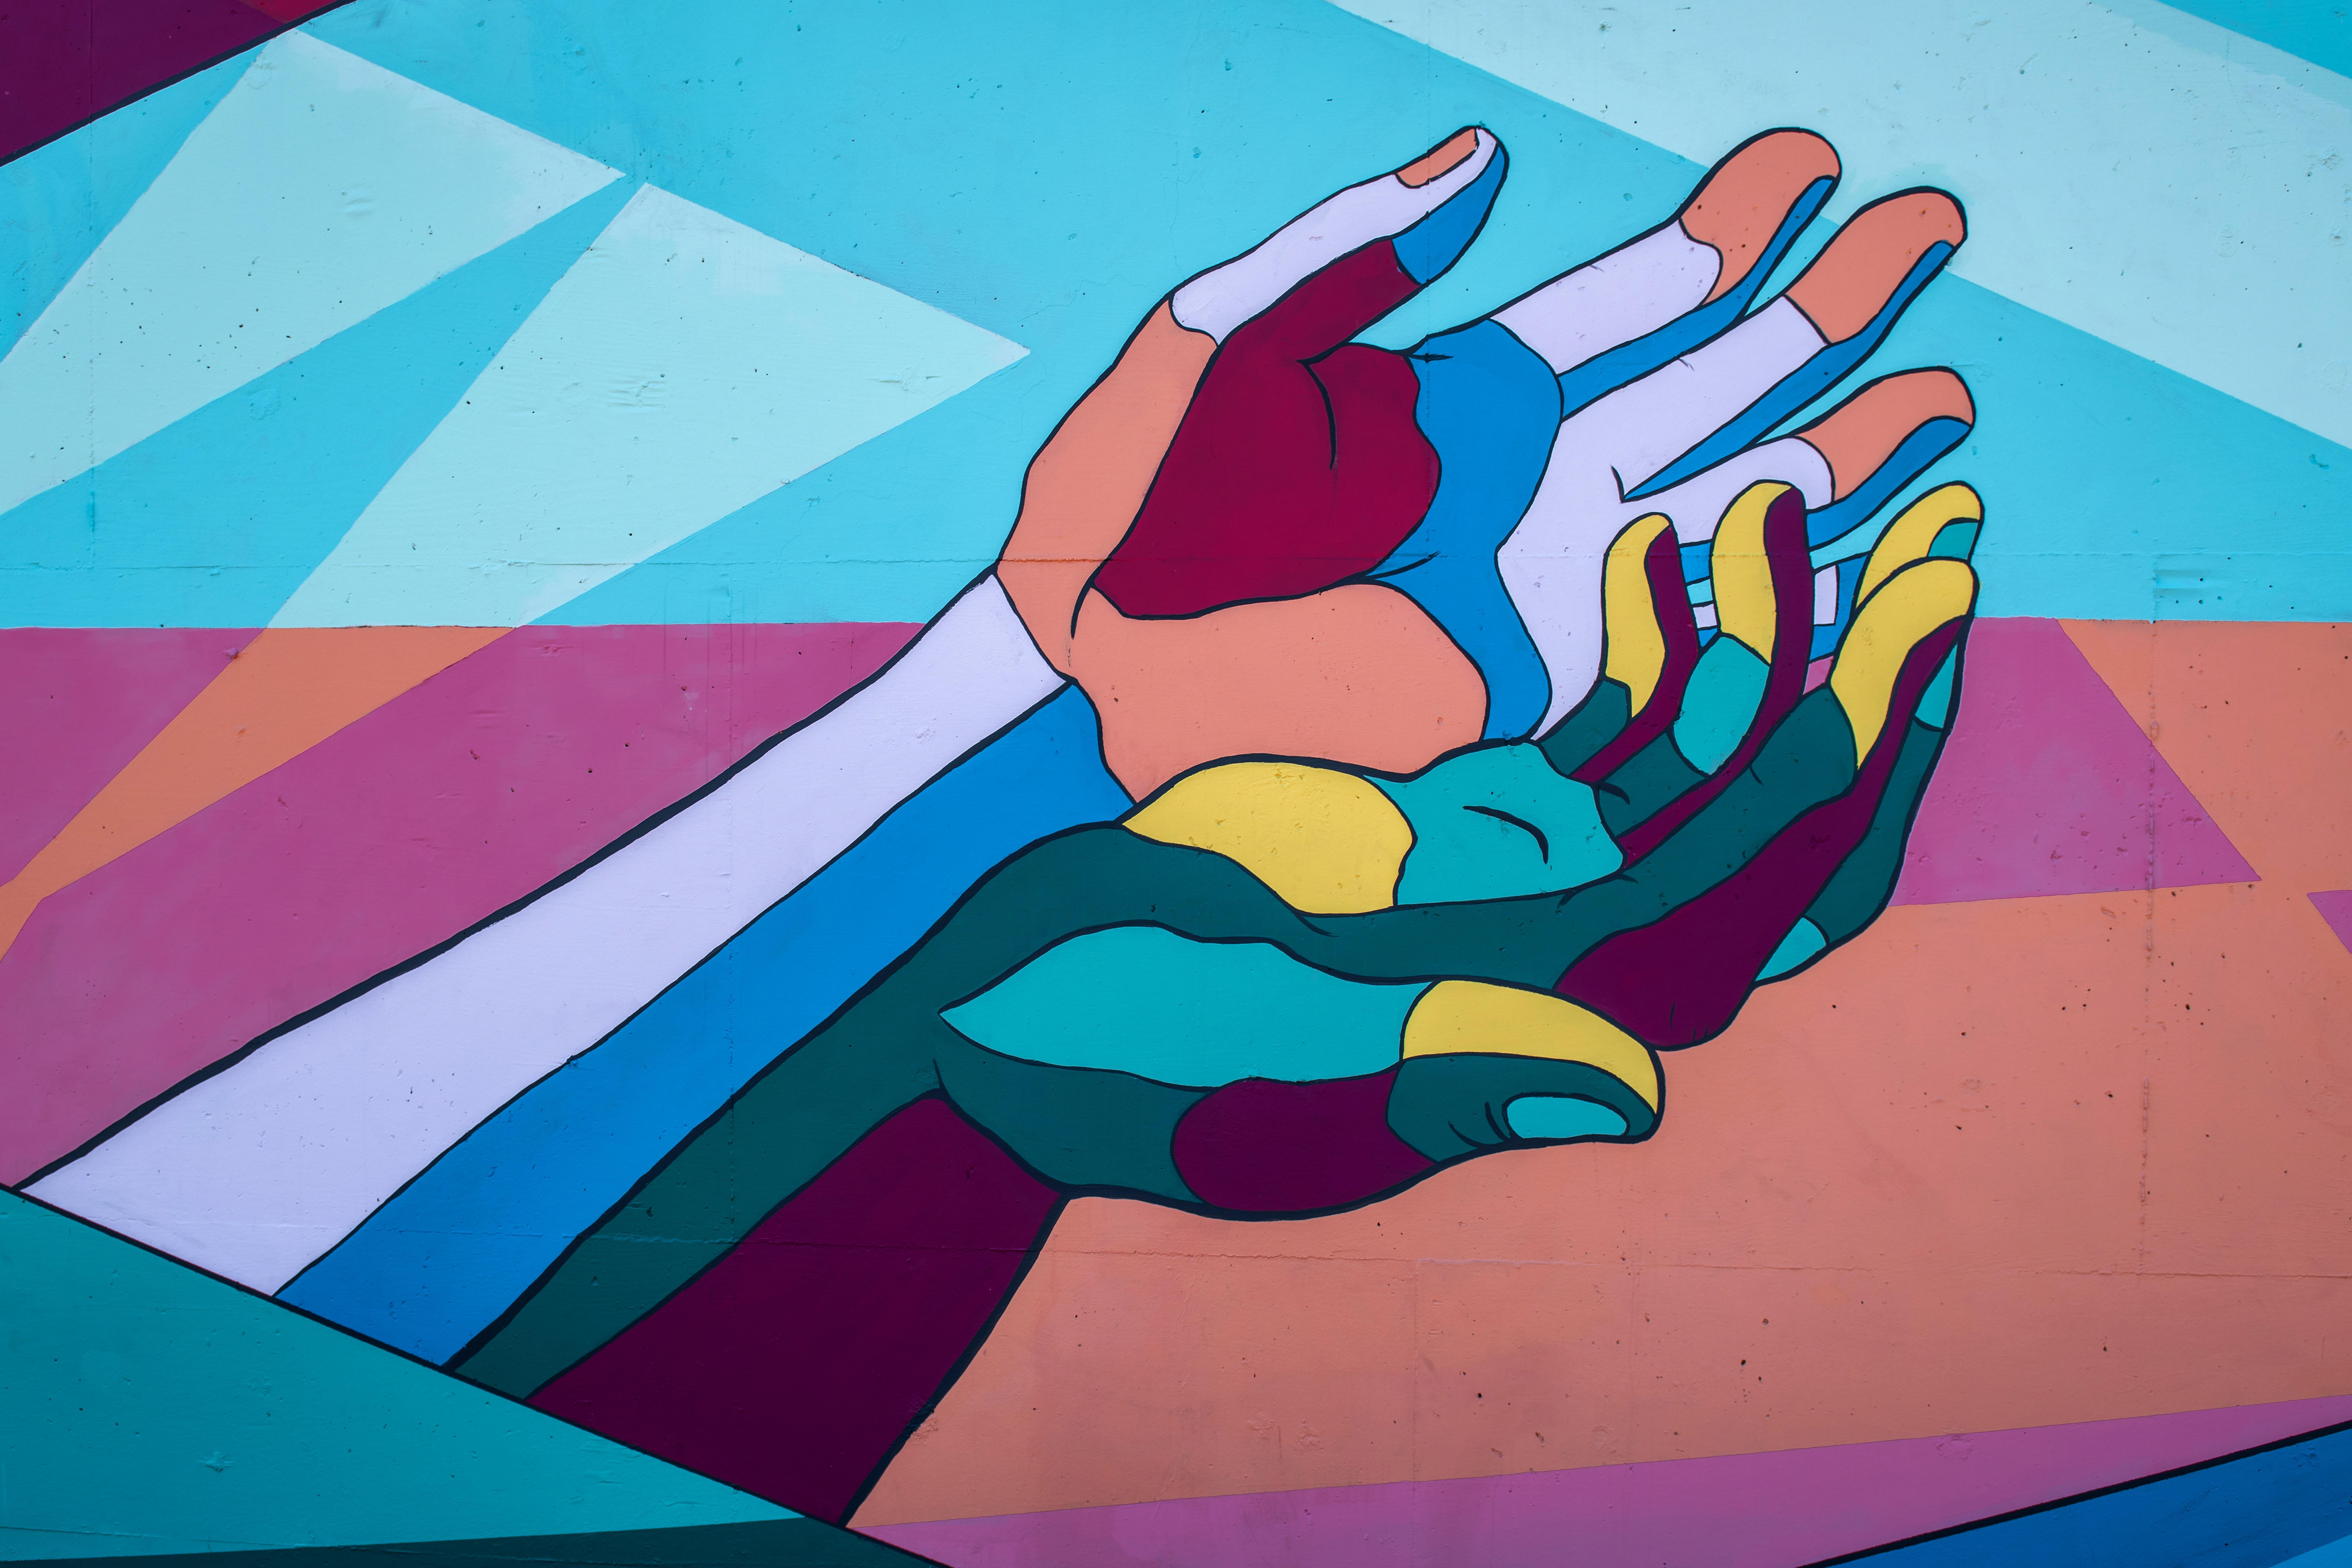 a colorful mural showing two hands supporting each other